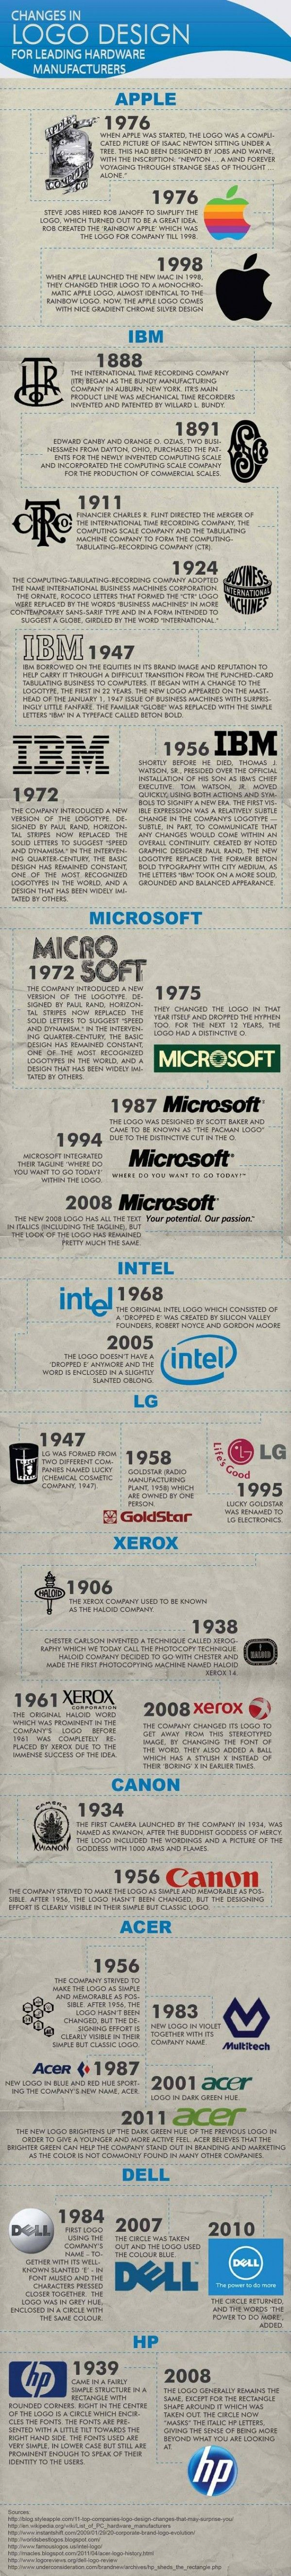 Logo evolution: Apple, IBM, Microsoft, LG, Canon, ACER, XEROX, DELL, HP